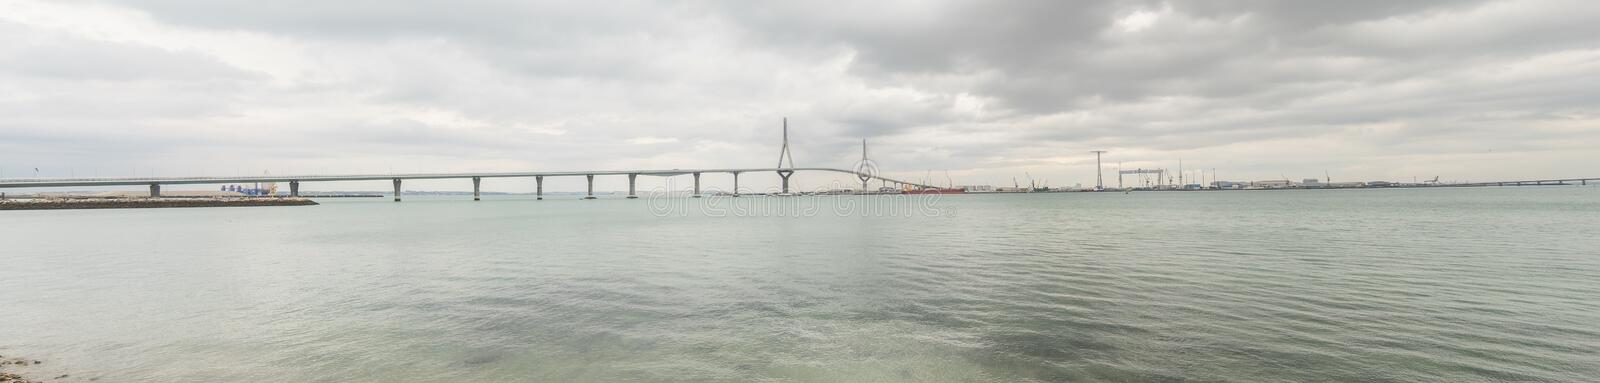 Cadiz new bridge panoramic view, called Pepa or the 1812 Constitution, Andalucia, Spain royalty free stock images